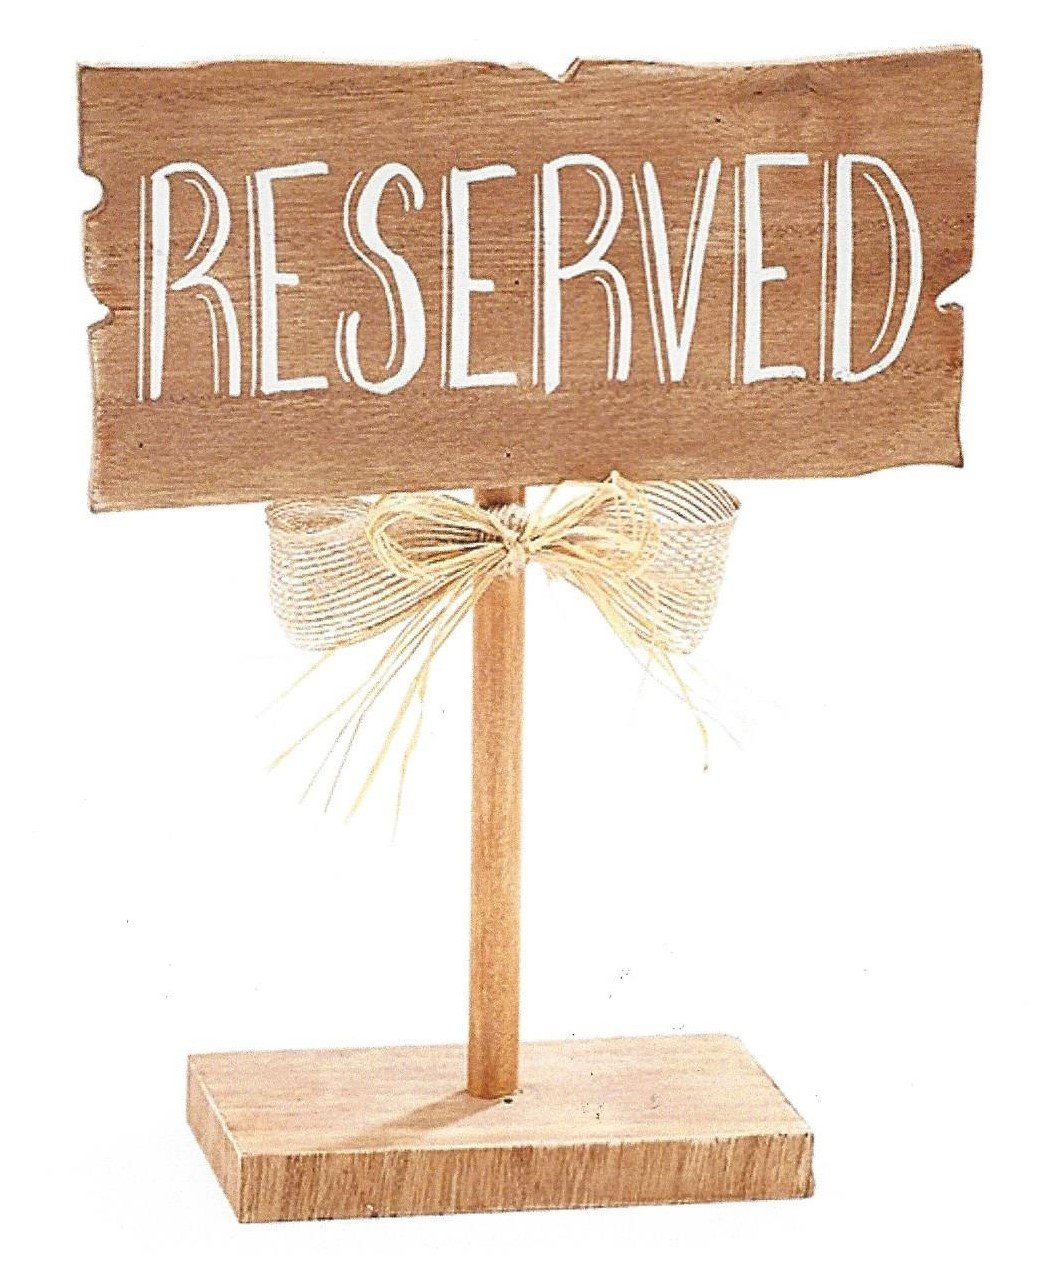 BNB Table Top Décor Reserved Sign Wooden Guest Seating Marker Plaque on Stand at 10 in Tall x 7.75 in L x 3 in D Natural Woodgrain Brown, Chalk White Wording Burlap and Raffia Bow on Post, 1 per order